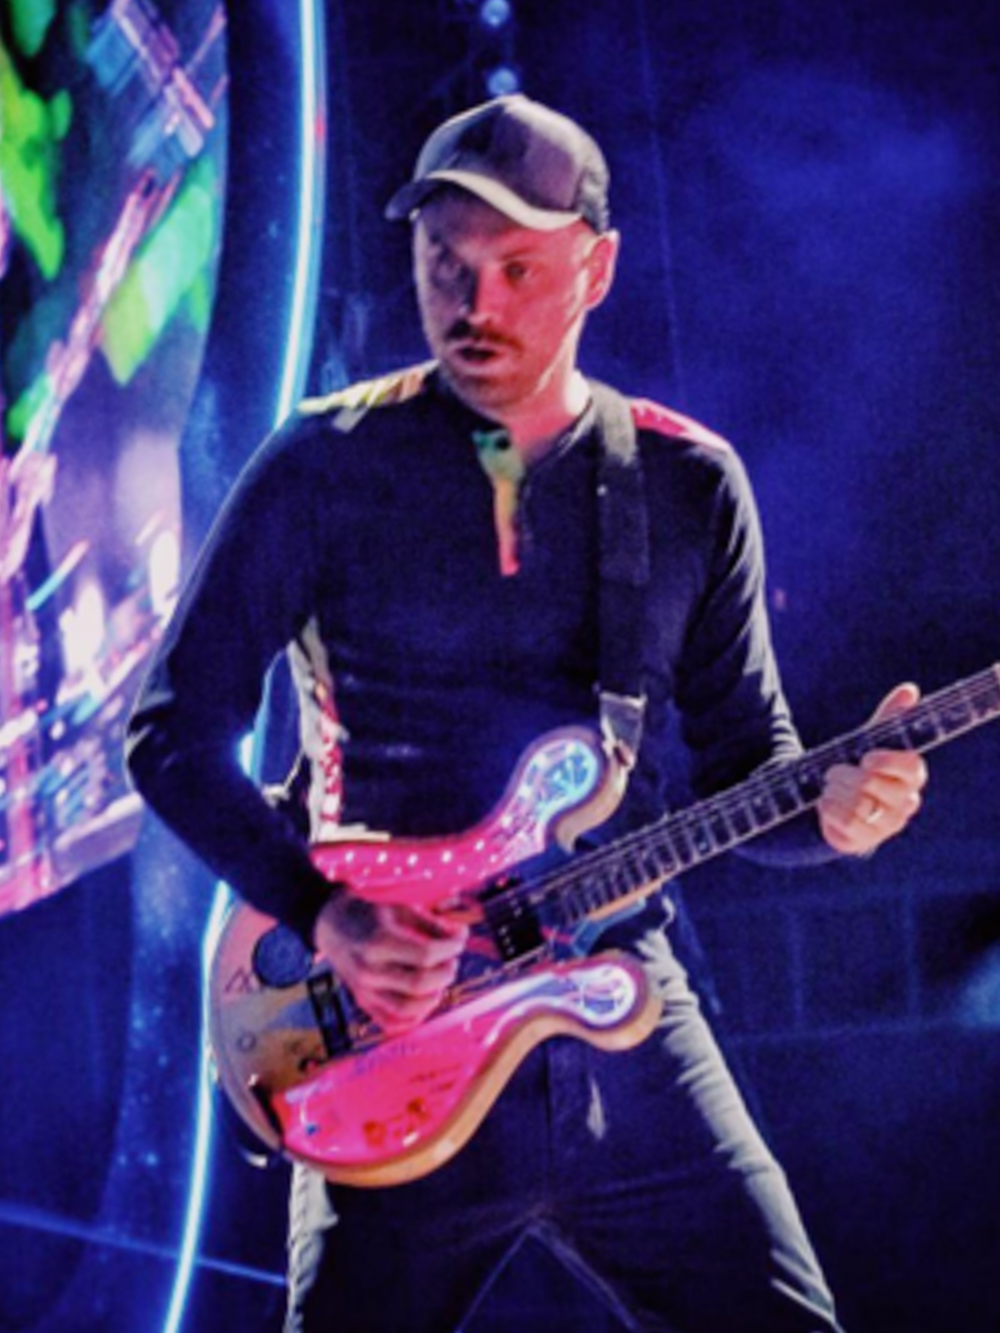 JONNY BUCKLANDCOLDPLAY - Image courtesy of Coldplay and Roadie #42